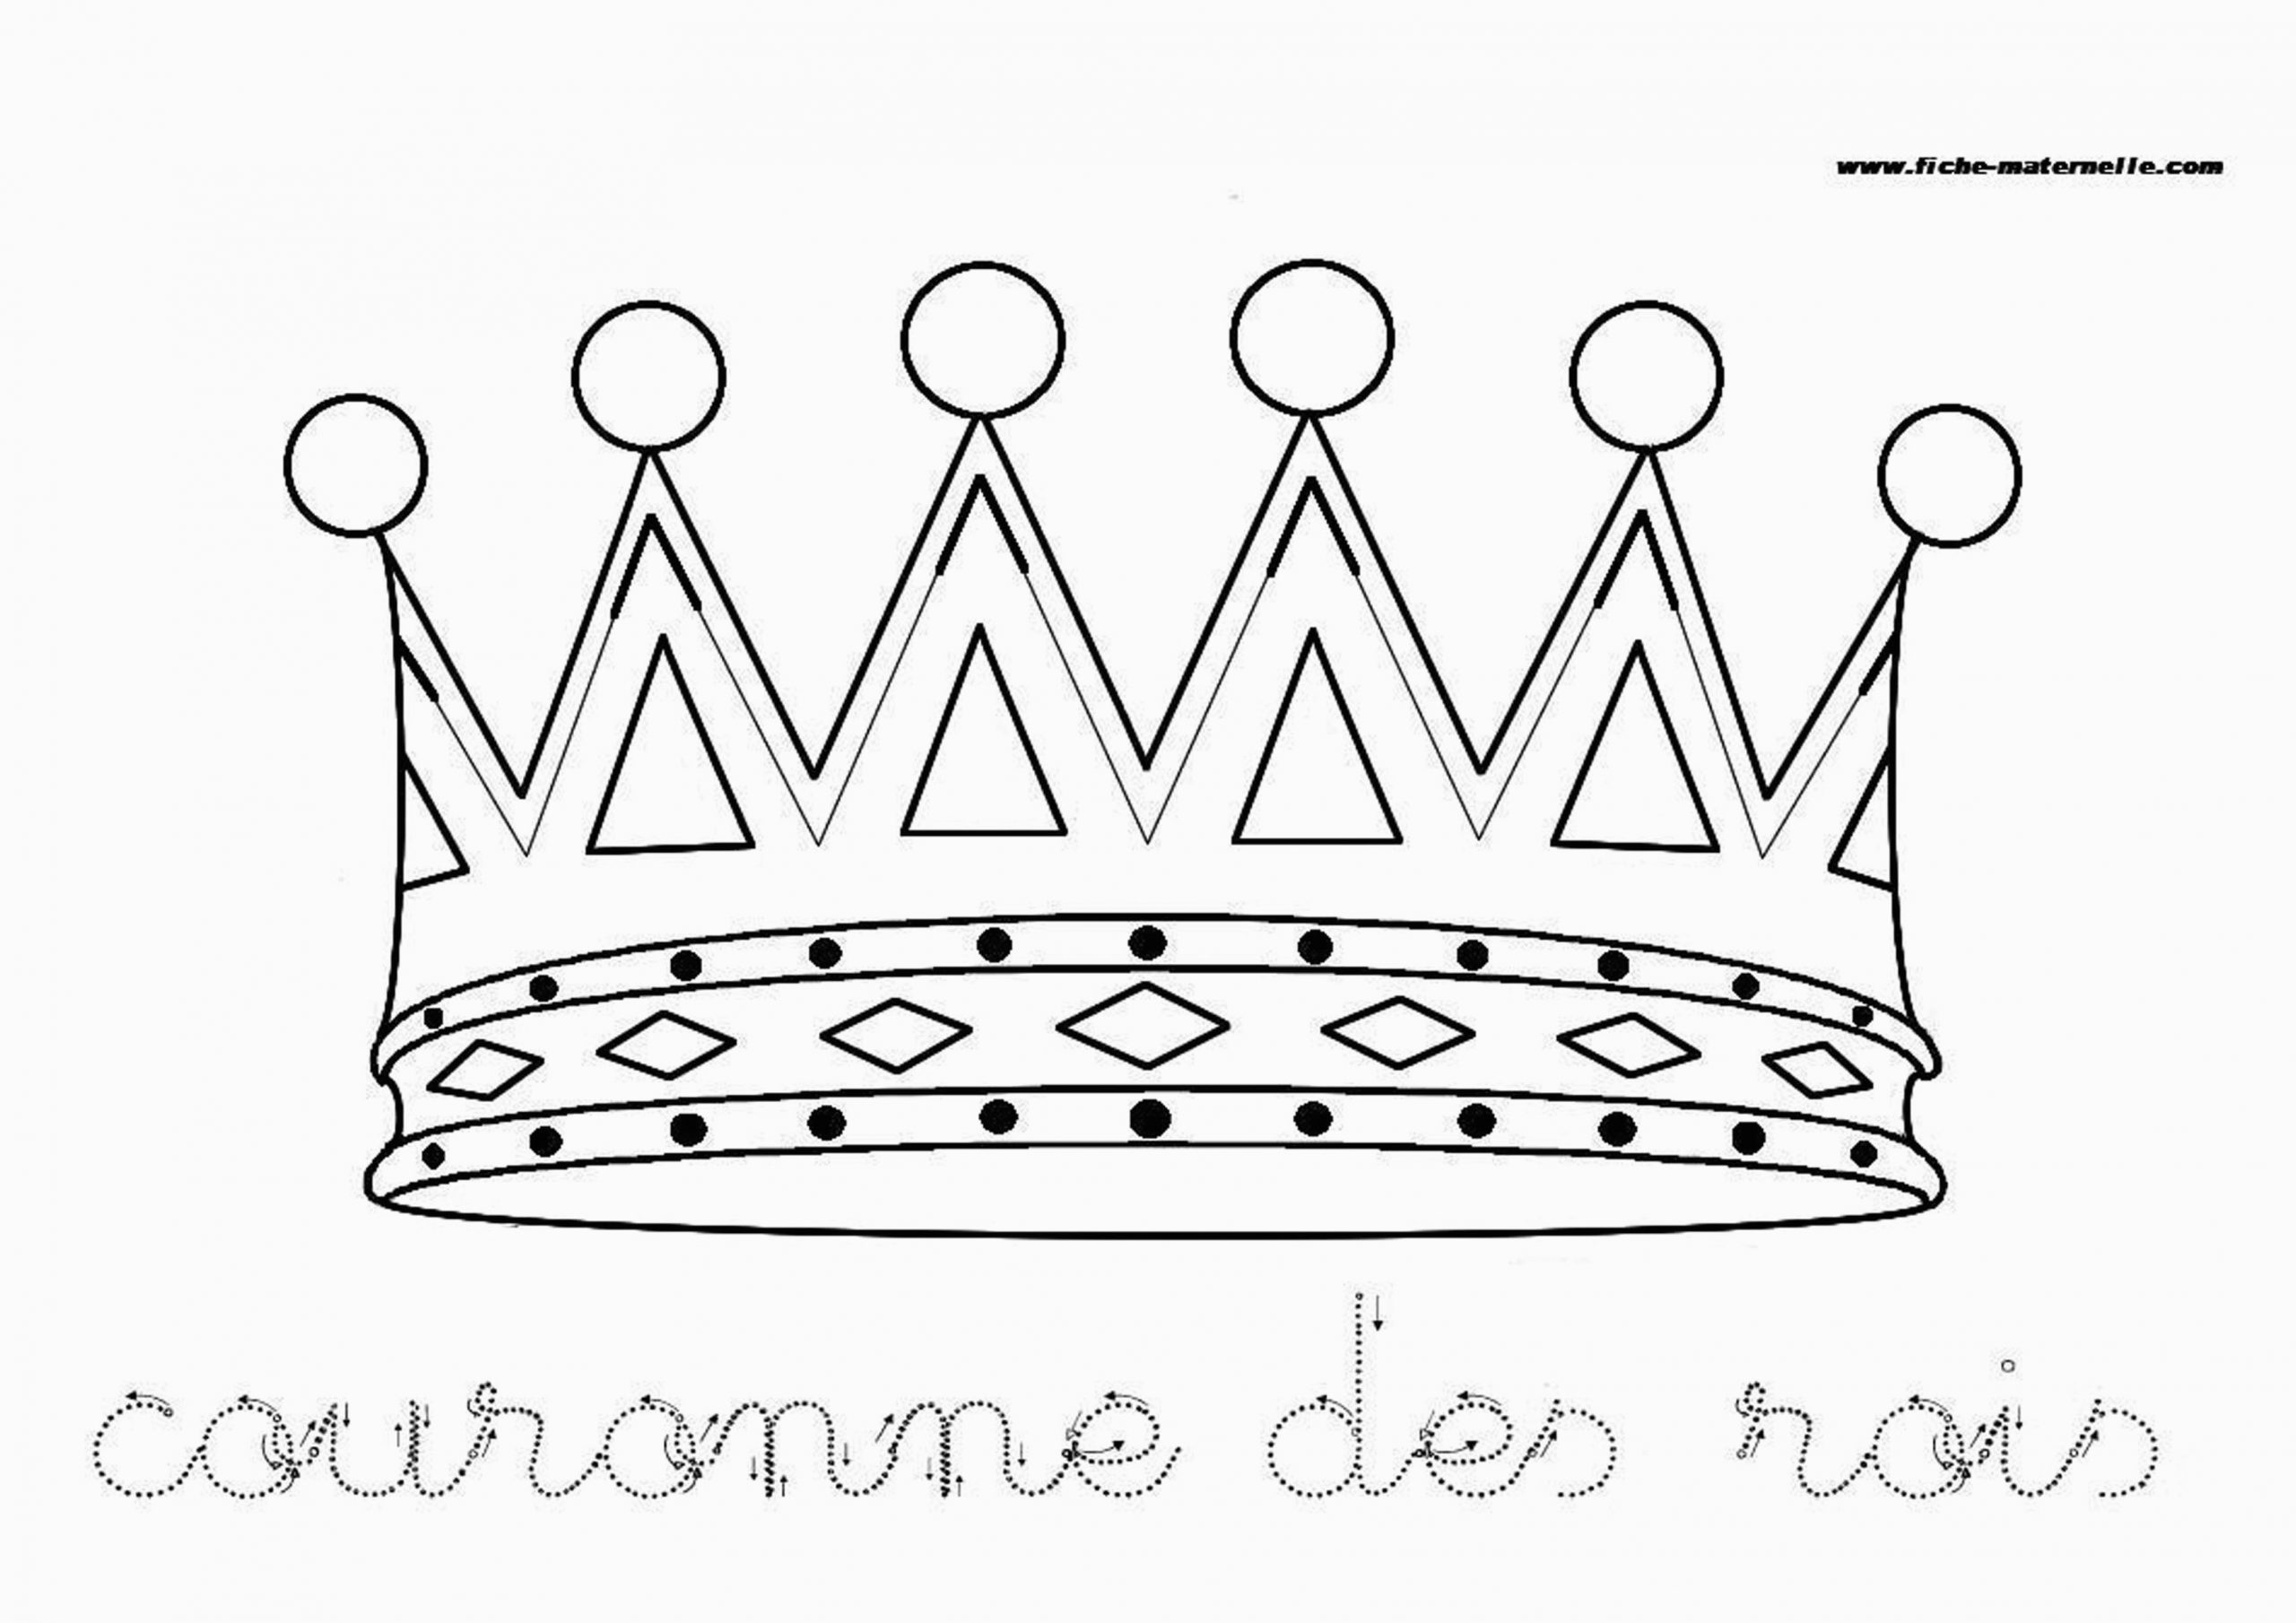 search query=Galette des Rois&type=image&lang=fr&region=fr&img=1&adv=1&start=350